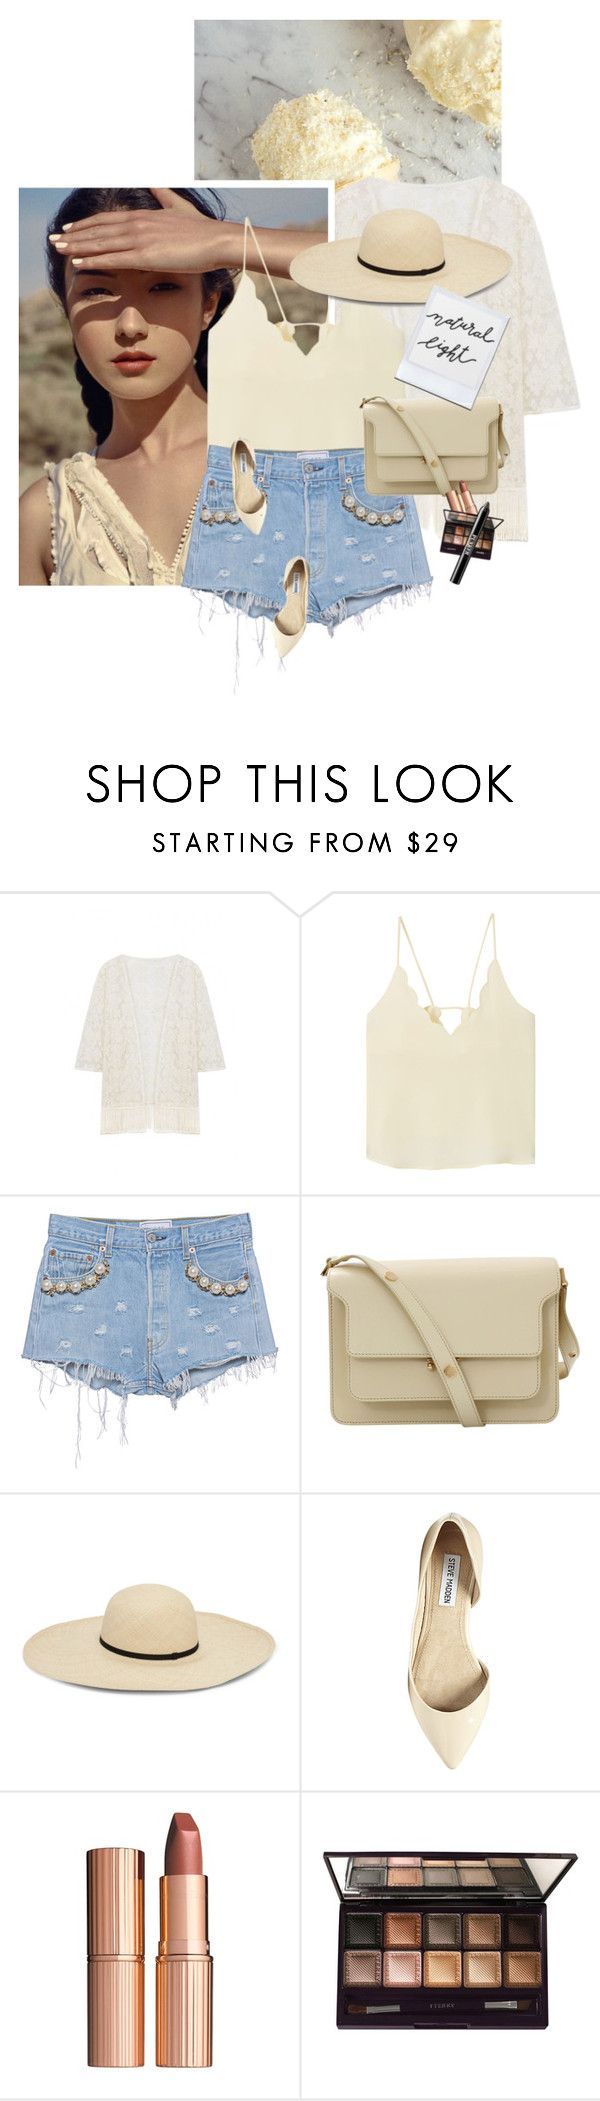 """Soleil"" by chebear ❤ liked on Polyvore featuring MANGO, Forte Couture, Marni, Steve Madden, Charlotte Tilbury, By Terry, Ardency Inn, jeanshorts, denimshorts and cutoffs"